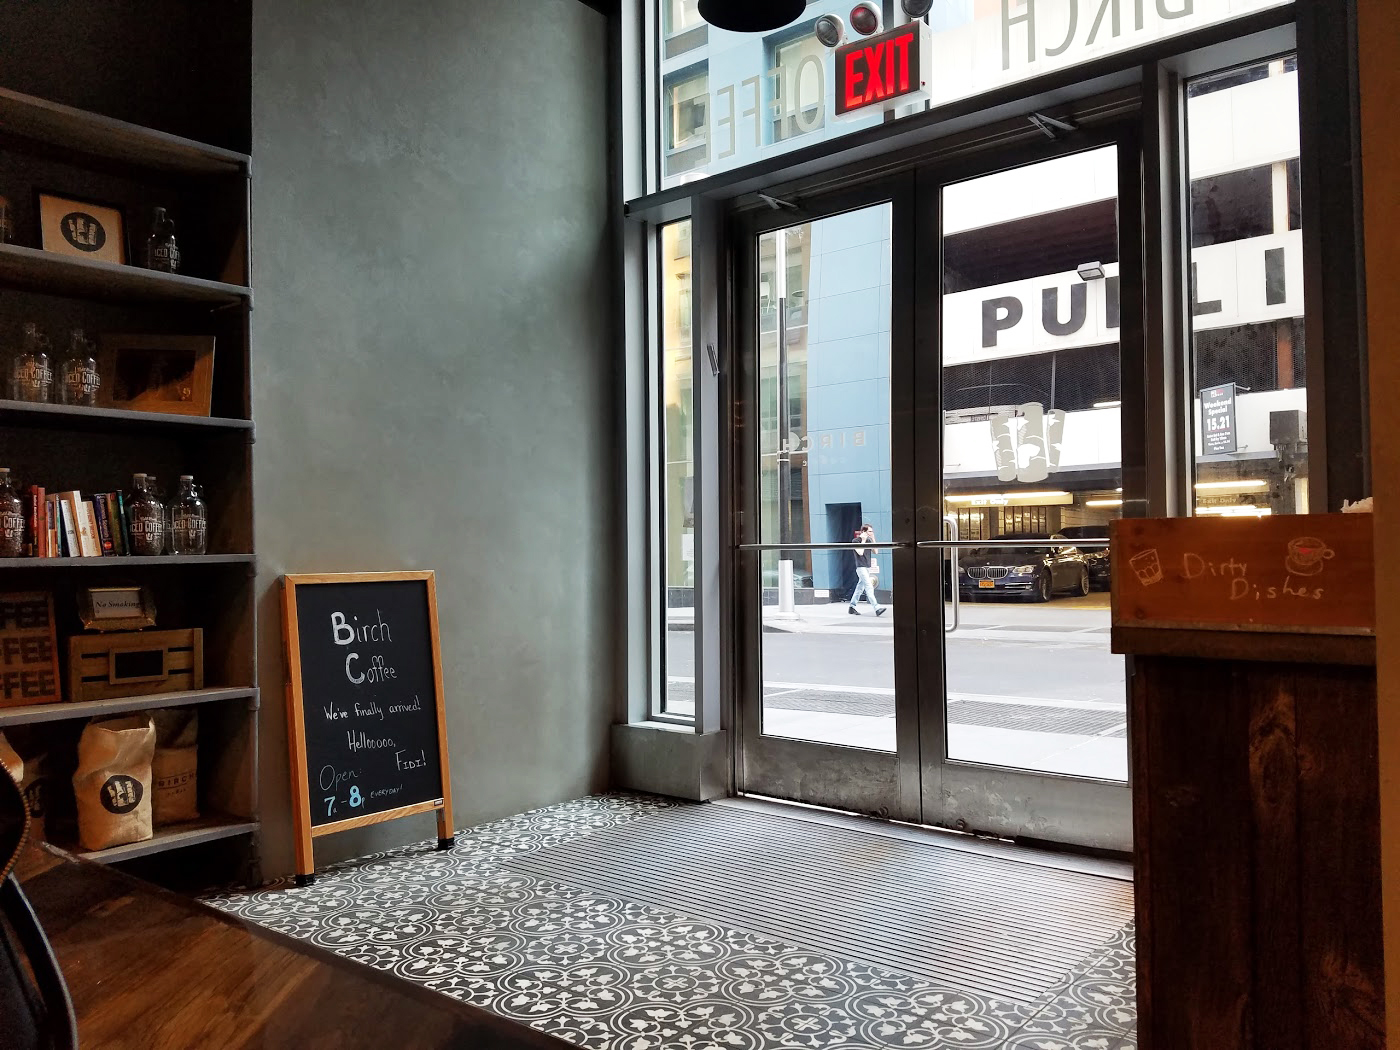 Entrance for Birch Coffee, with a shelf to the side holding brand products. MEP provided by 2L Engineering.